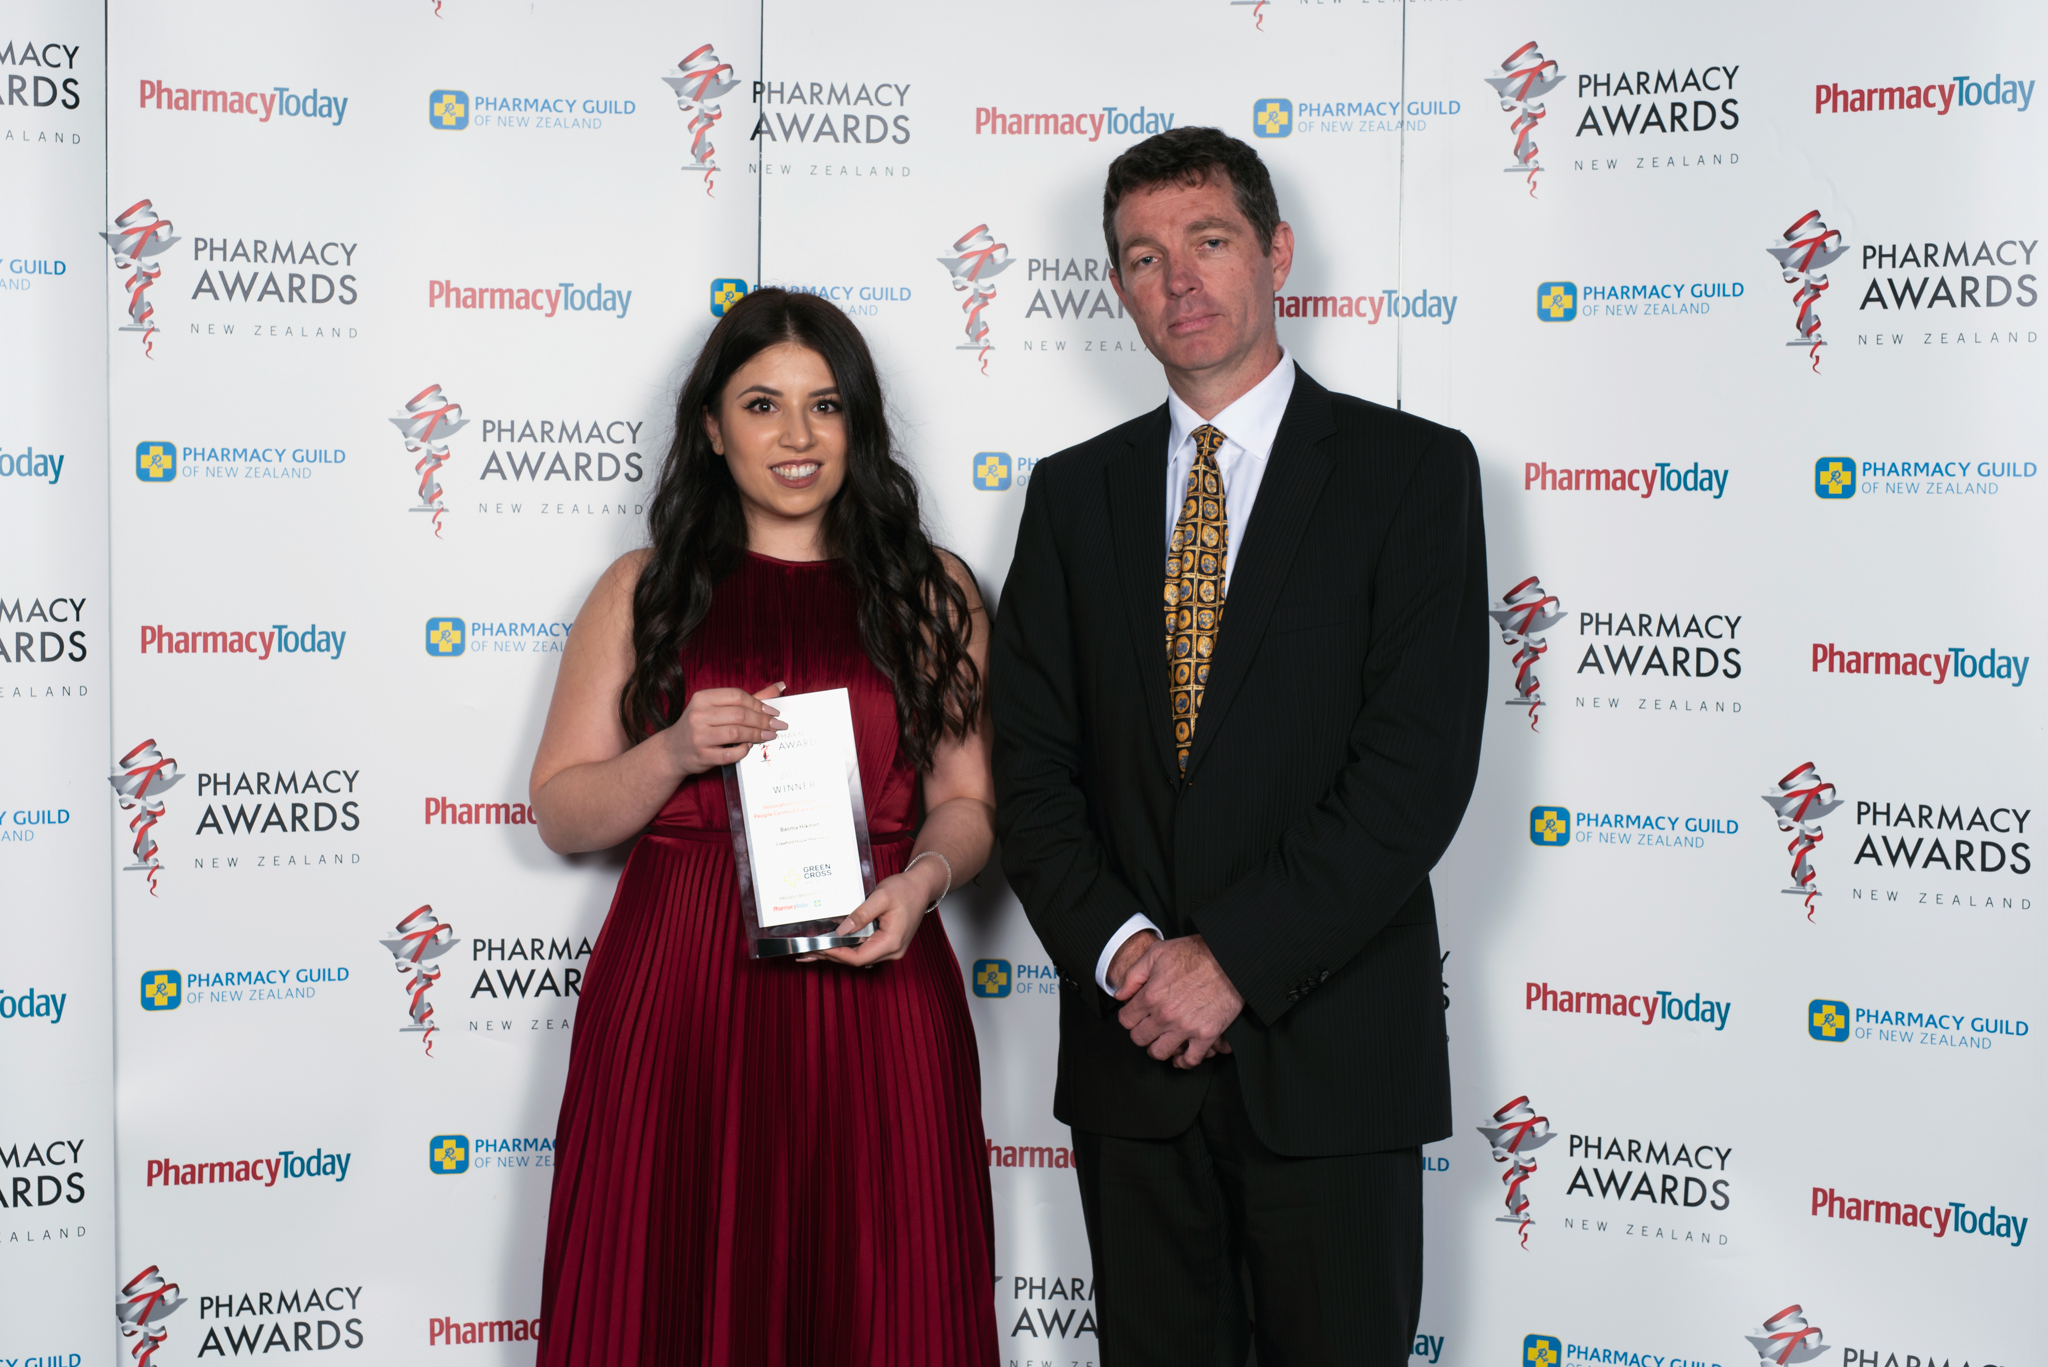 Pharmacy-Awards-2018__0JC9096_lowres